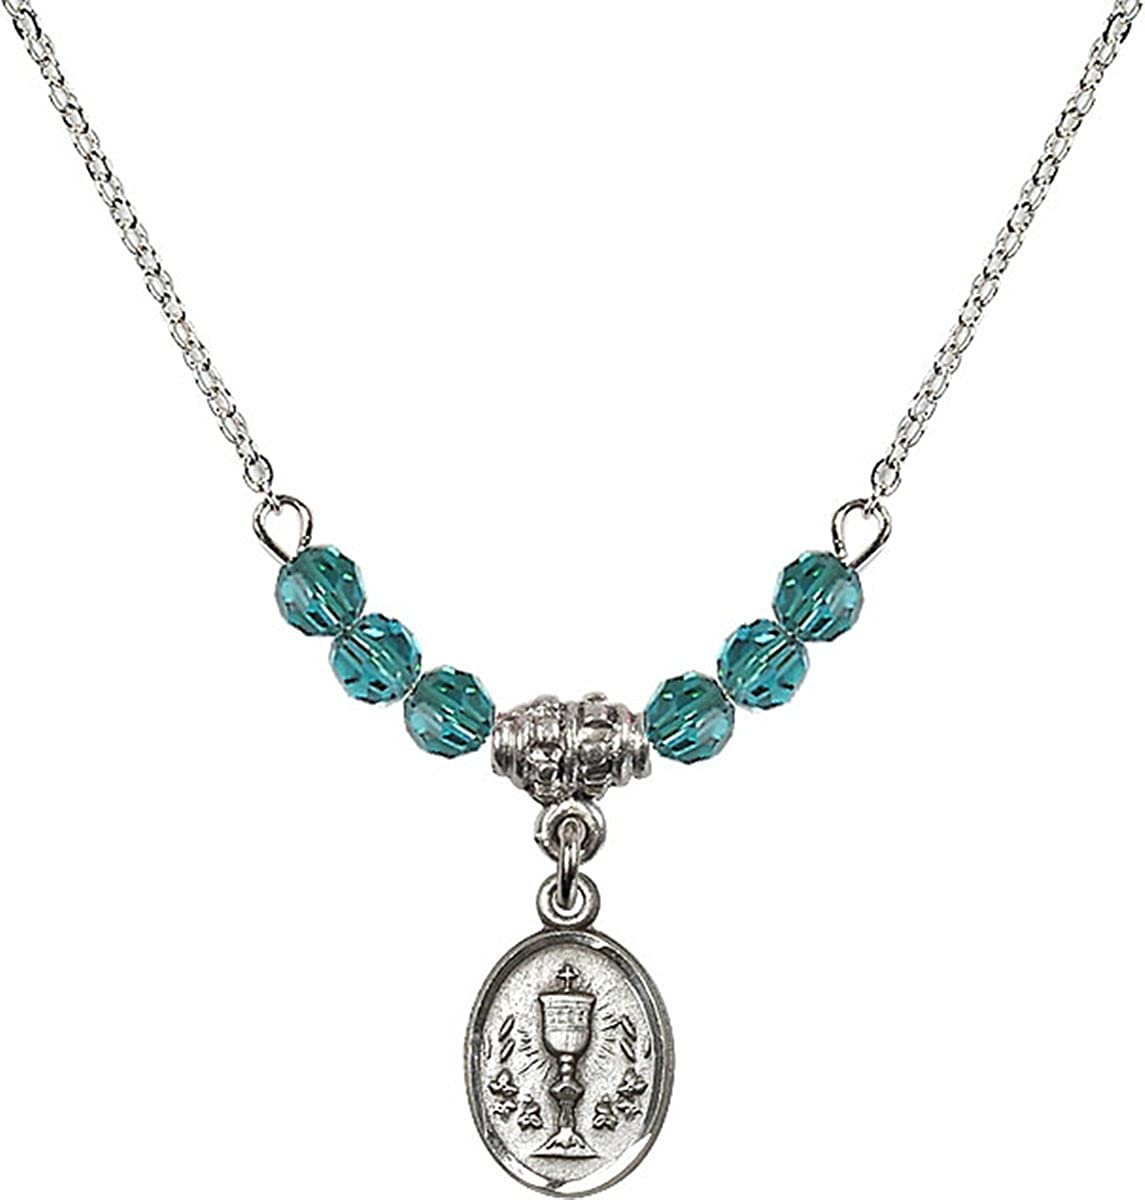 18 Inch Birth Month Colored Bead Necklace with First Communion Medal Charm